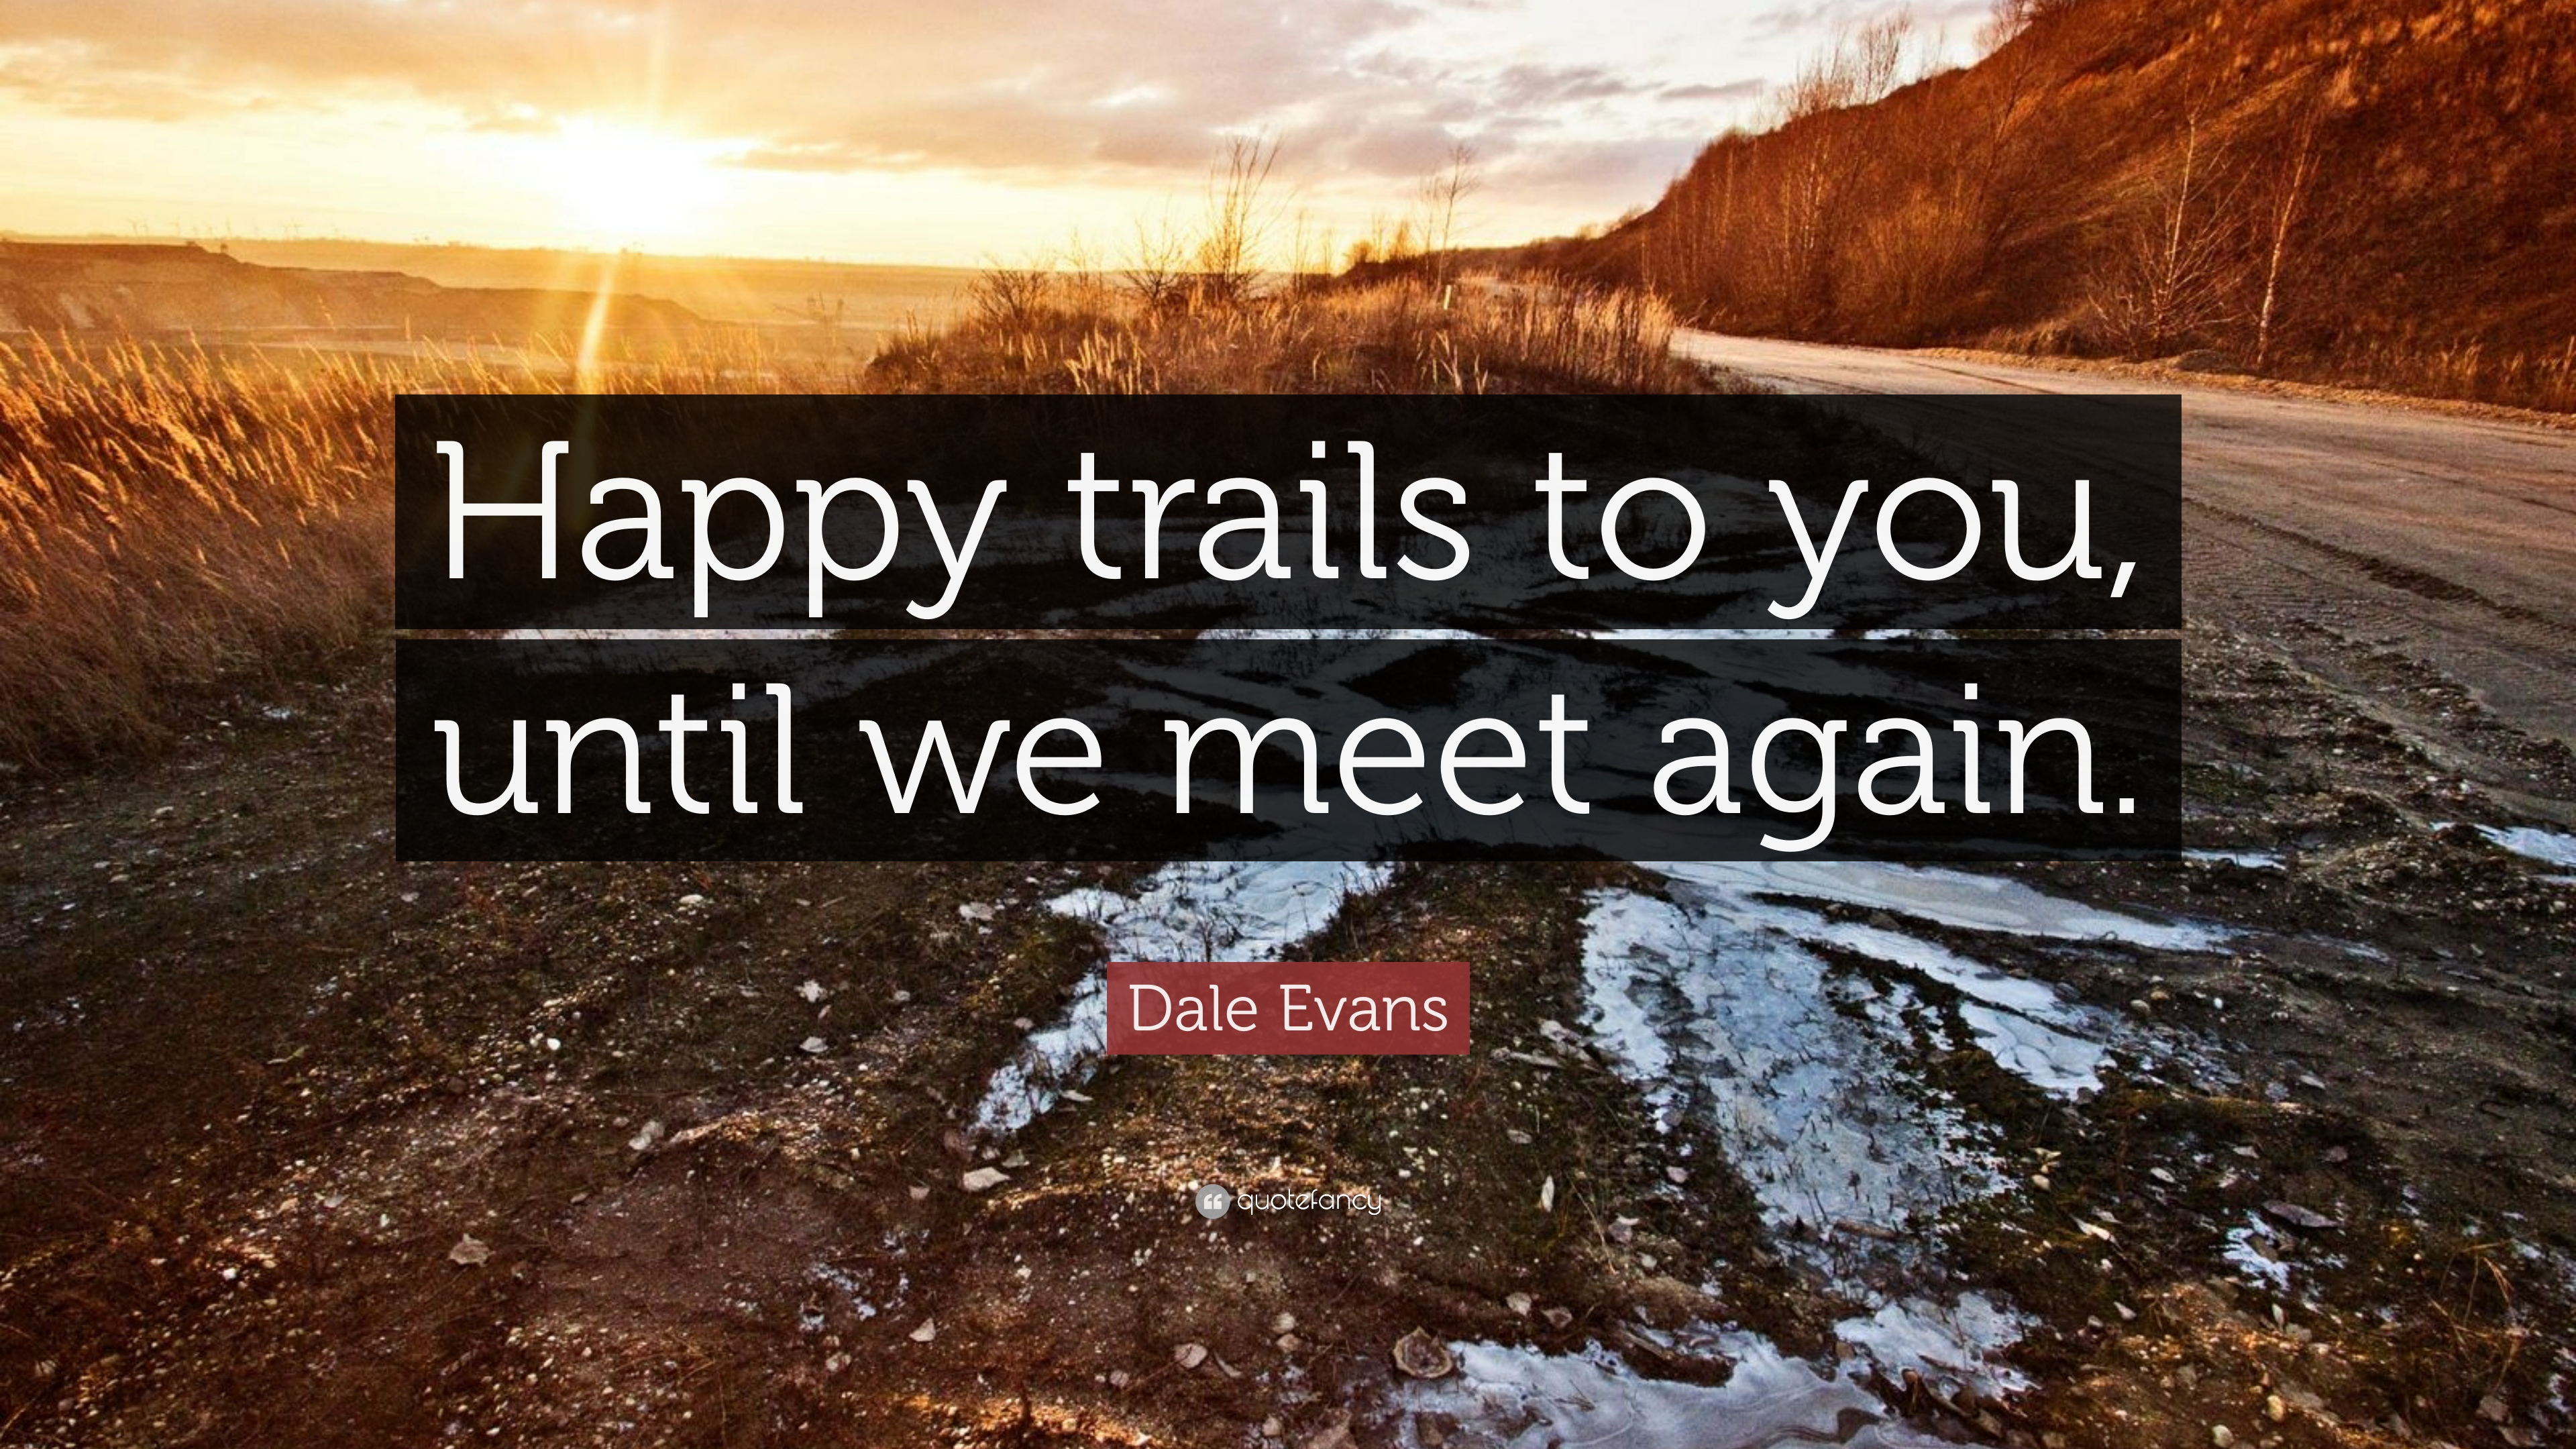 happy trails to you until we meet again meaningful use